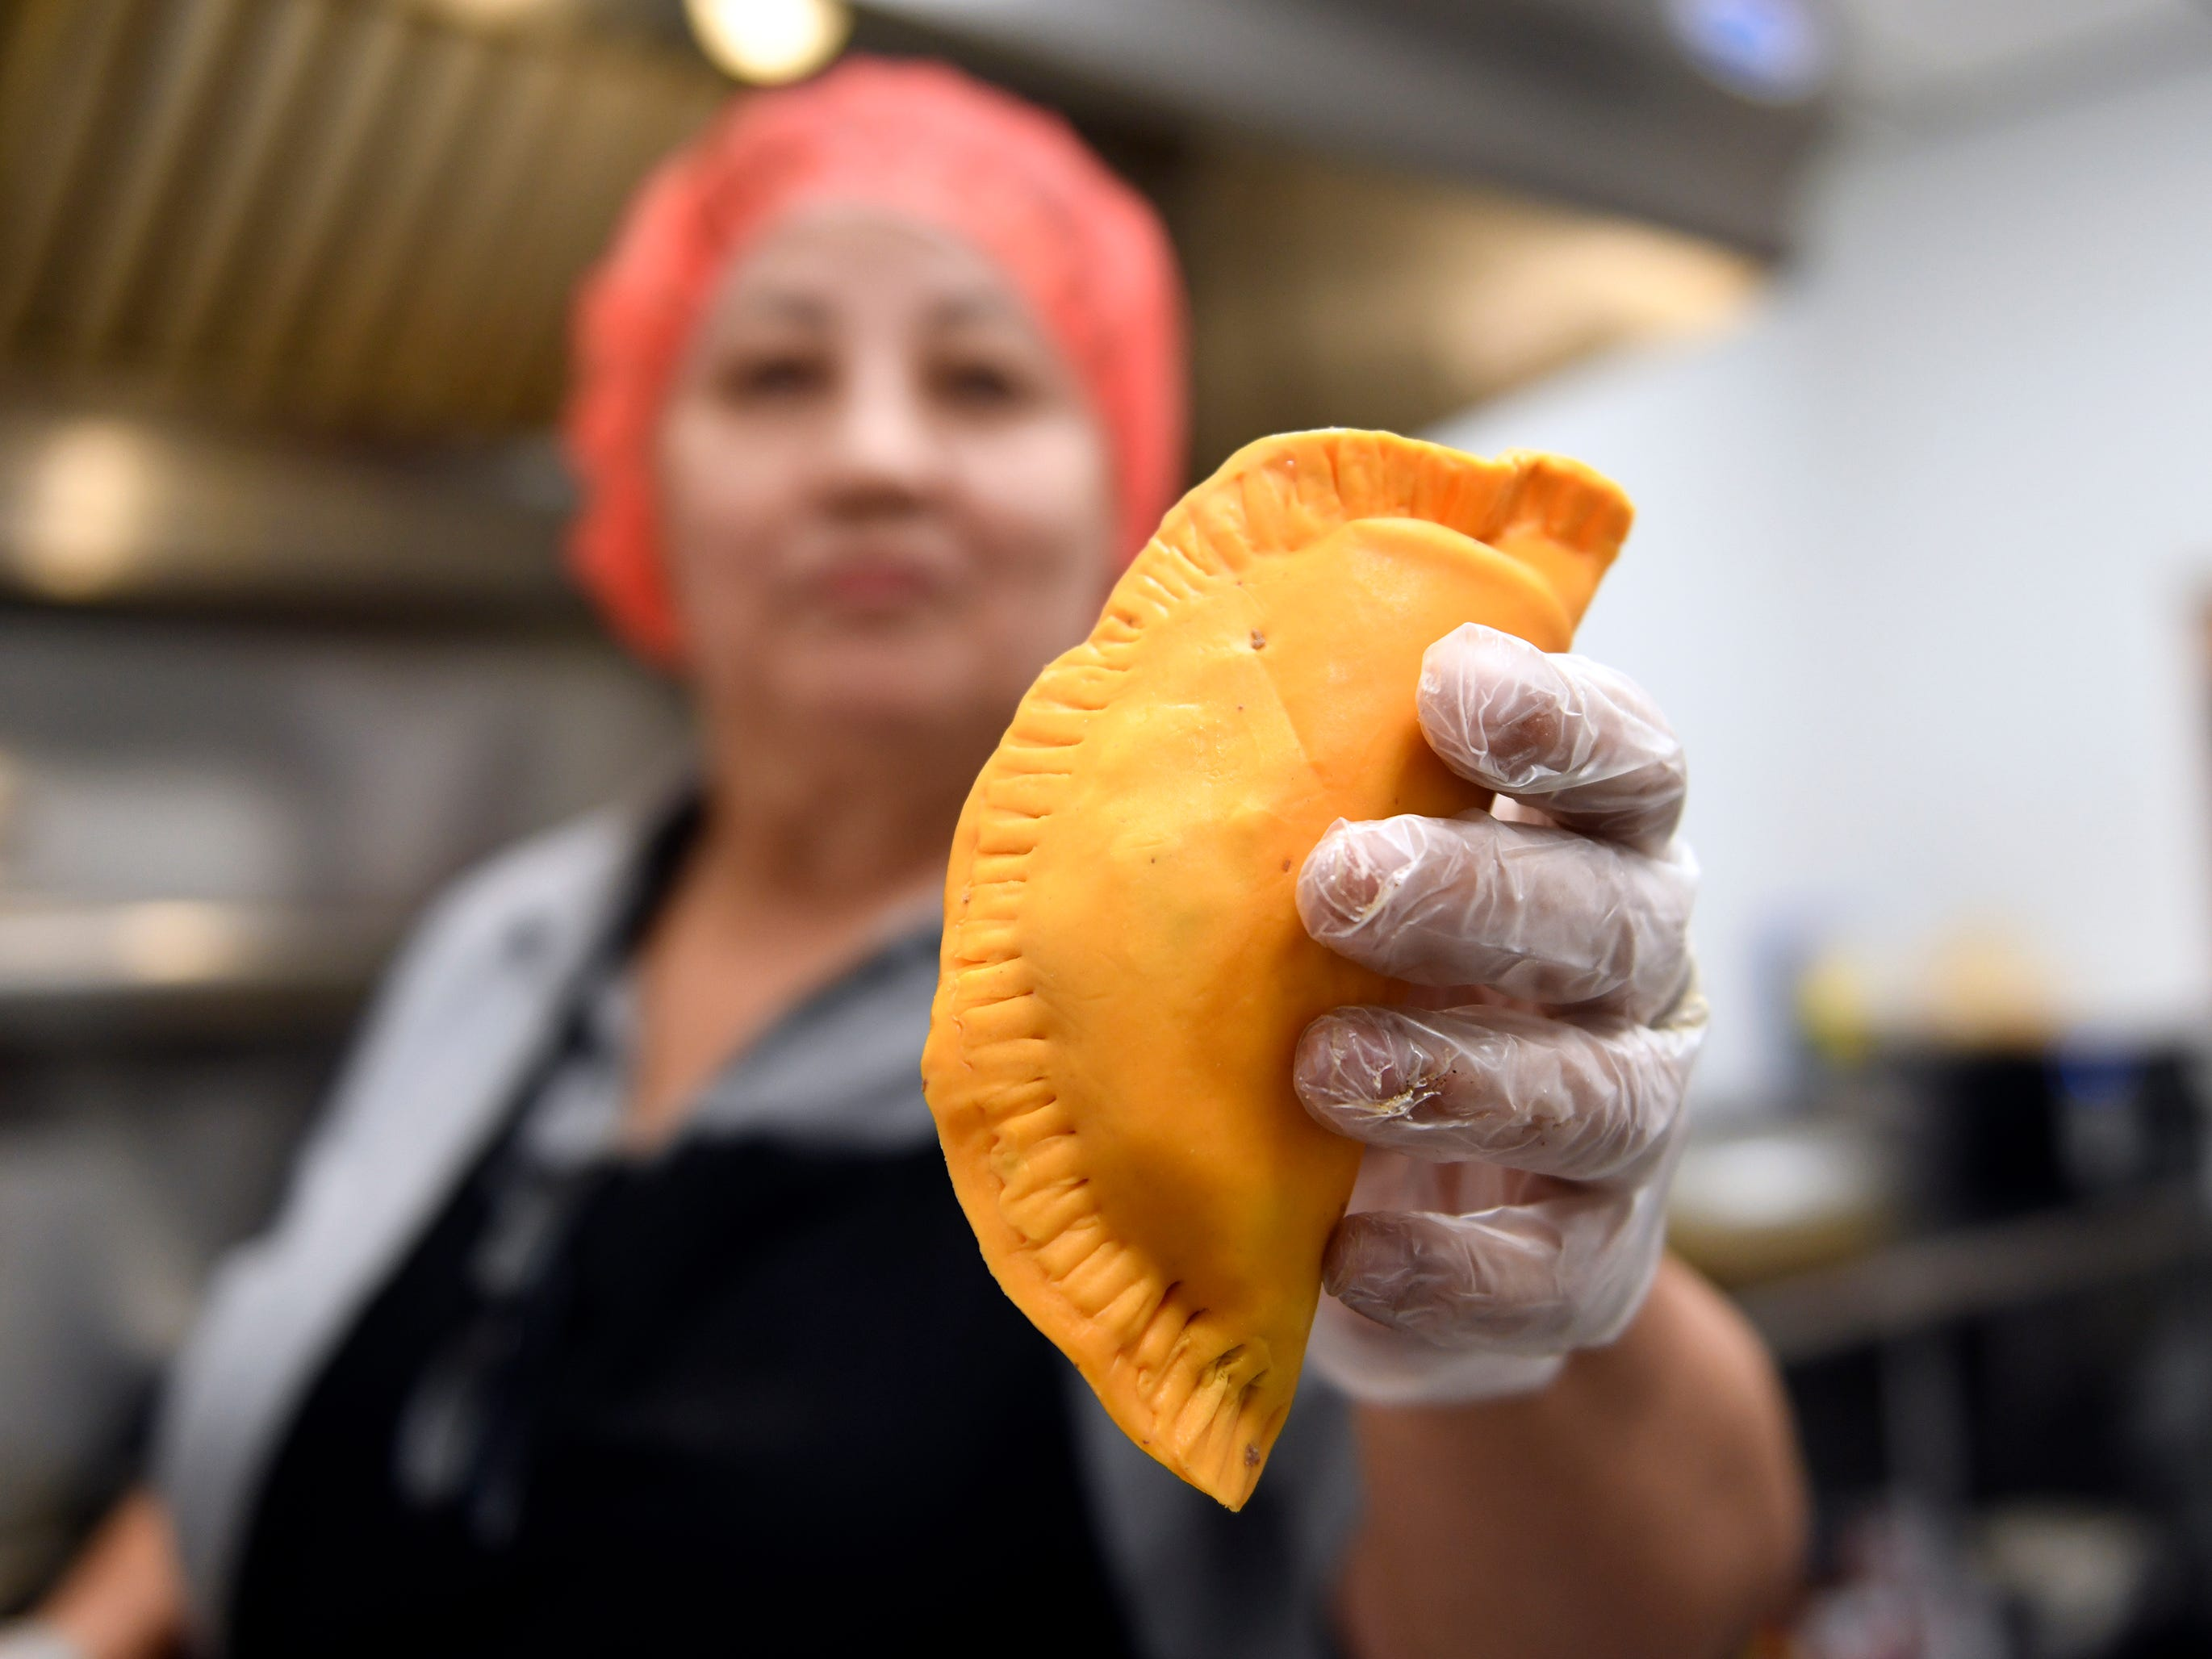 Kathy Flores holds a pastelillo that she cooked at Criollo's Latin Cuisine. The Millville restaurant specializes in Spanish, Puerto Rican and Dominican food.